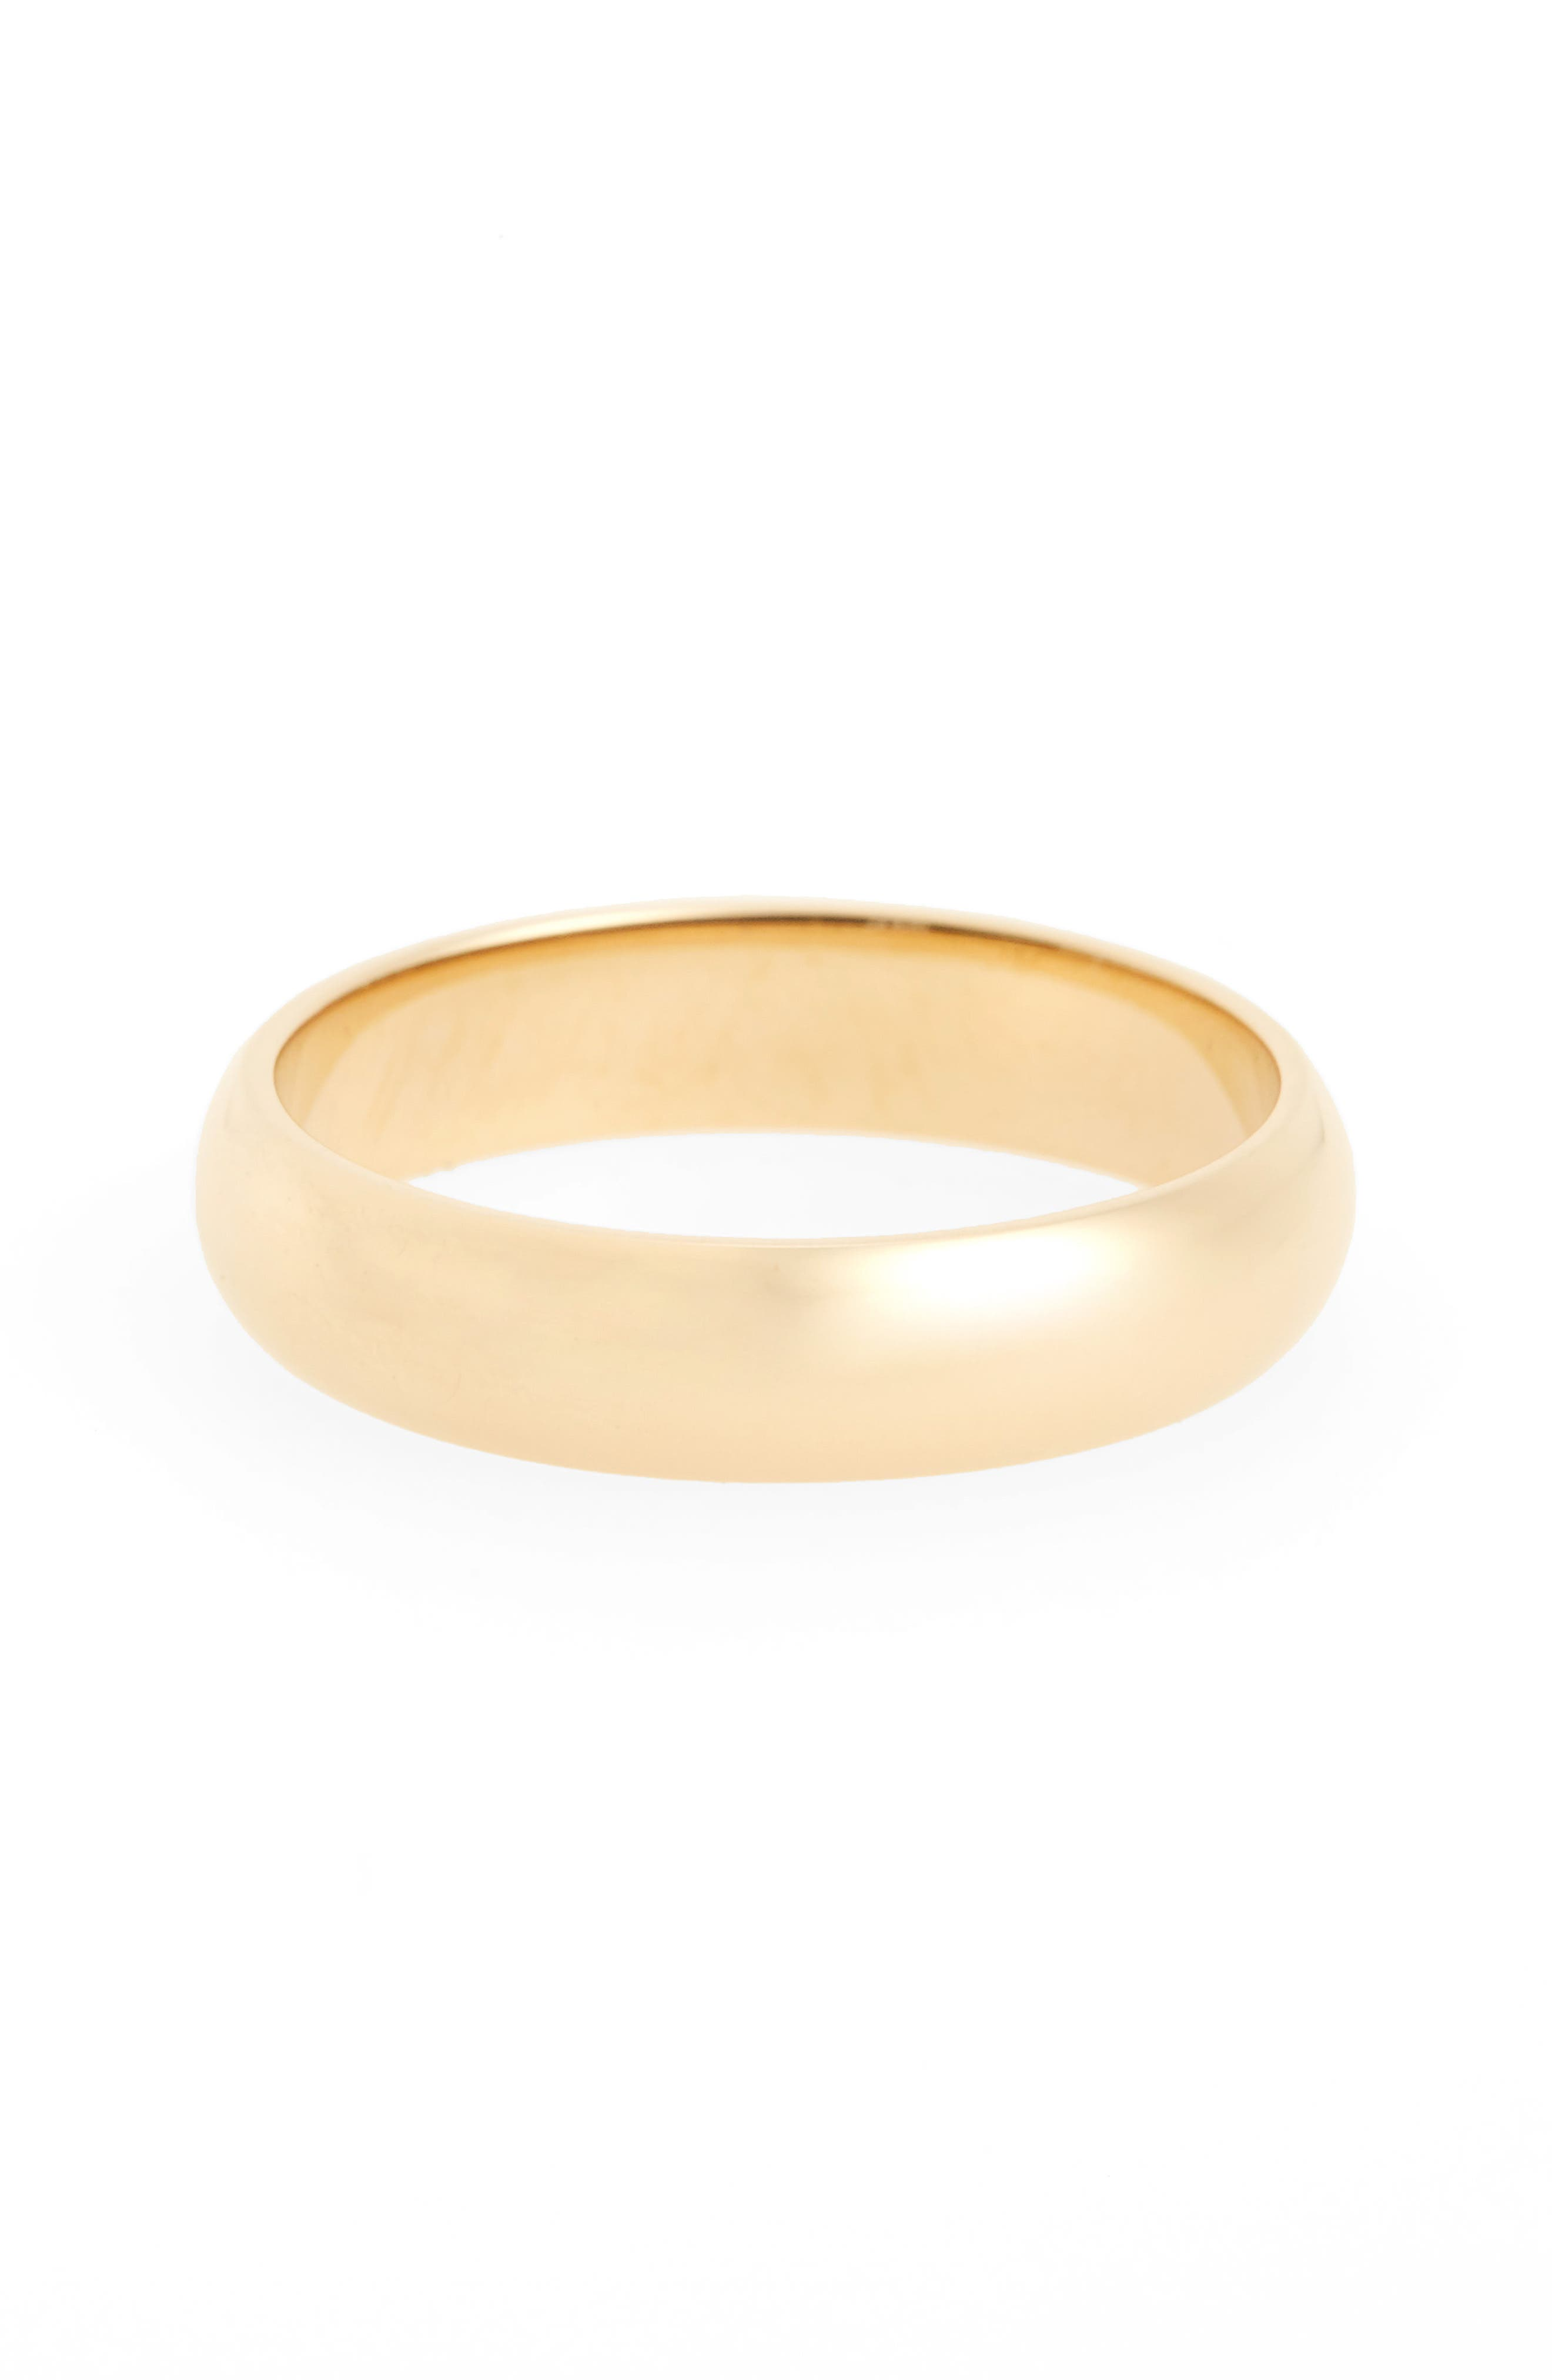 Main Image - WWAKE Harmony® Half Round Classic Band Ring (Nordstrom Exclusive)